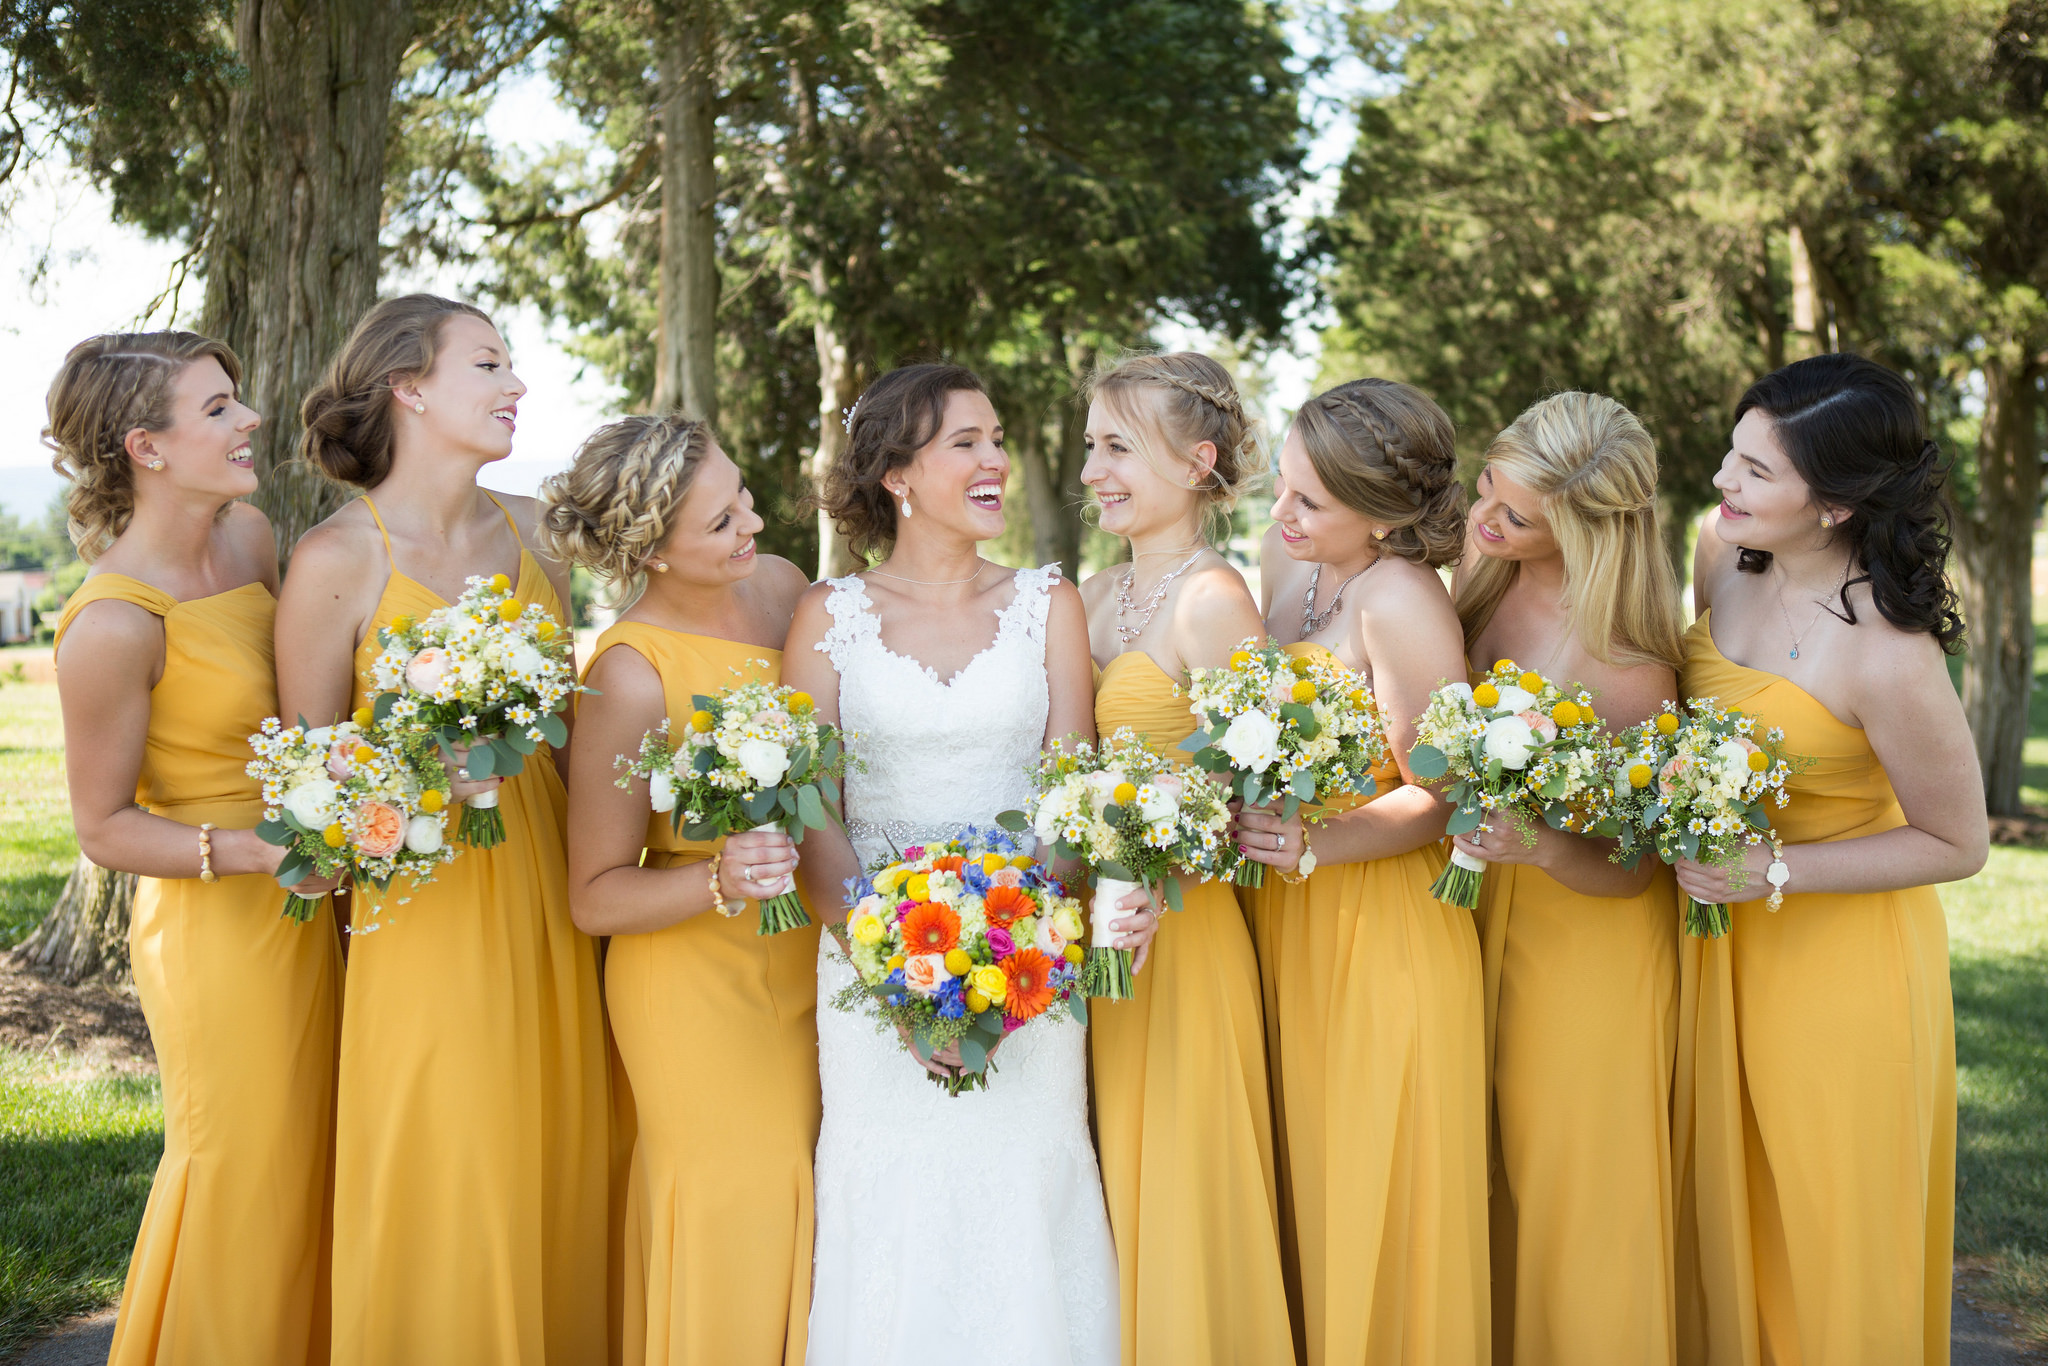 Wedding crush gold azazie blog 294666576632582c2ca5ak 29980038162d3627669d4k 3001090985193a0bd9a48k marigold gold yellow bridesmaid dresses bridesmaids dresses wedding bridal ombrellifo Images